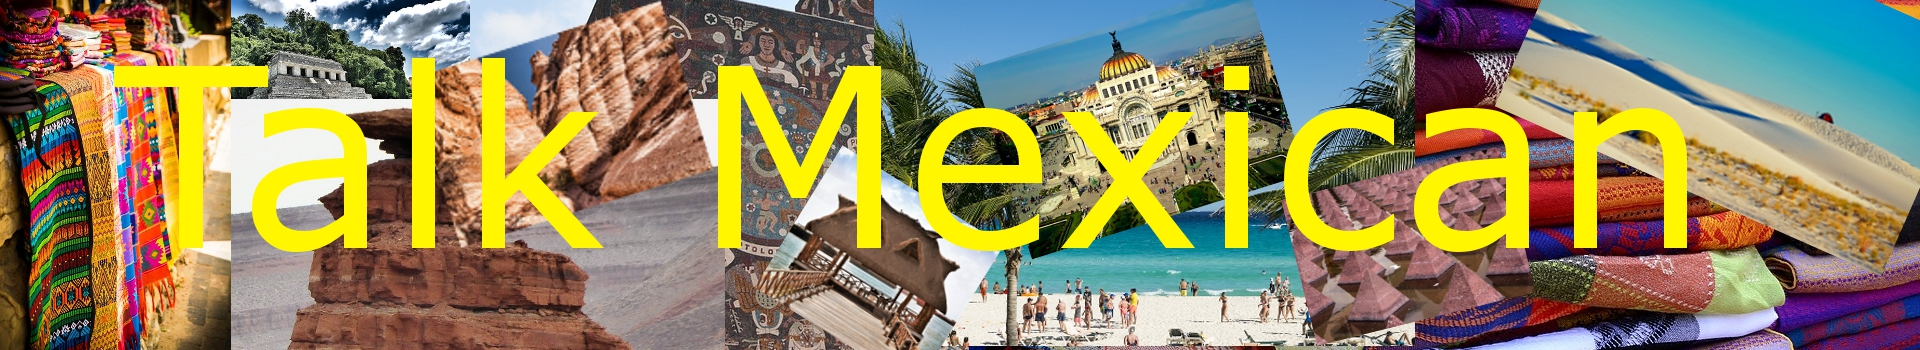 What website is good to learn spanish the mexican way?